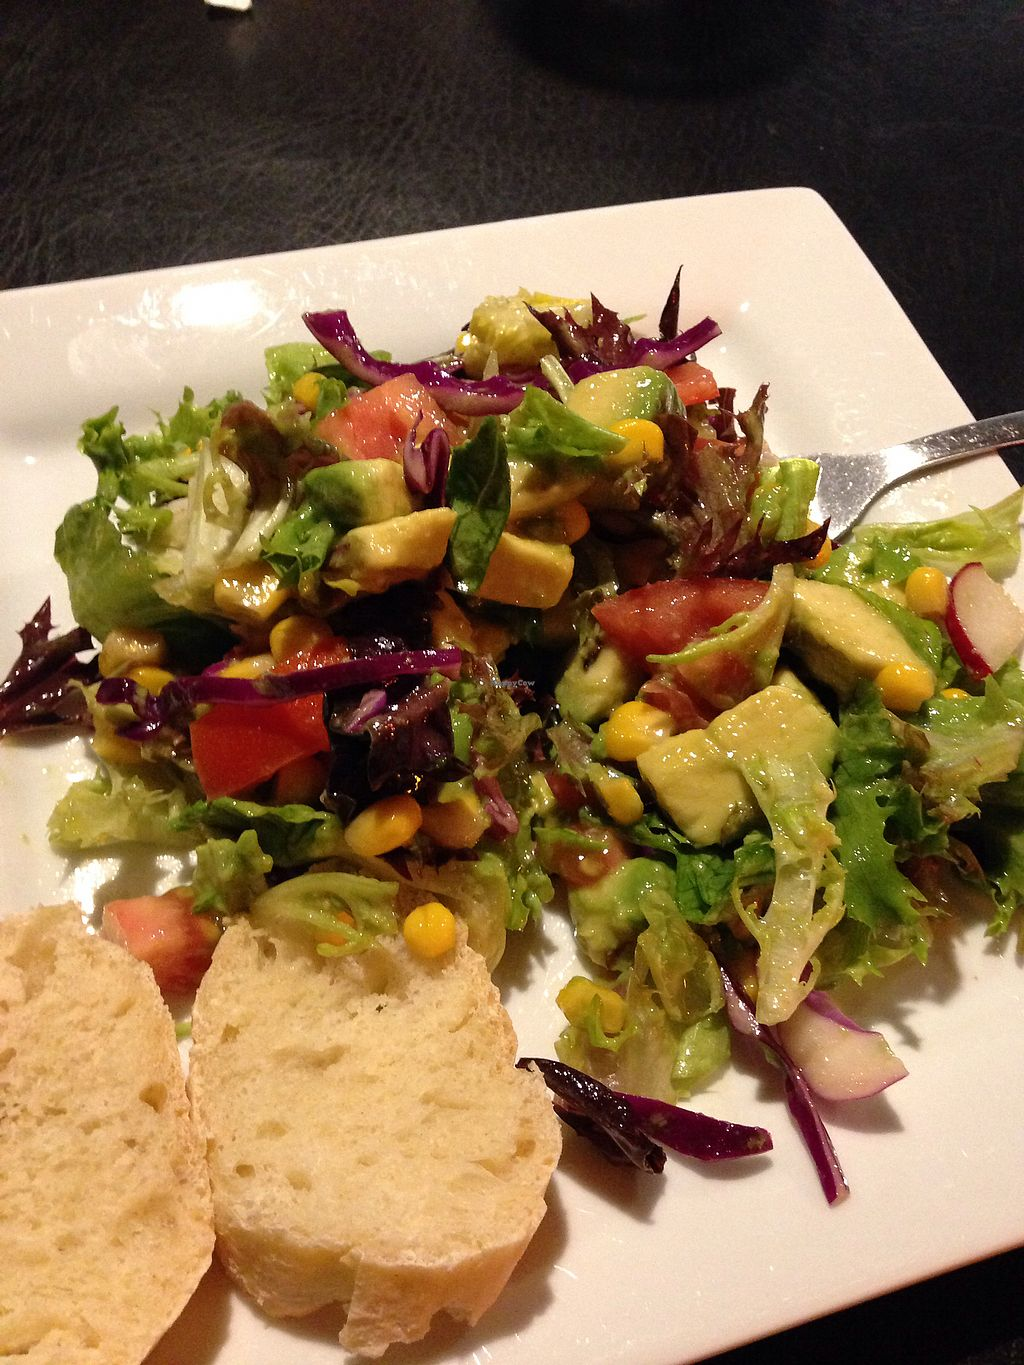 "Photo of Stagecoach Place Cafe  by <a href=""/members/profile/Oscargogh"">Oscargogh</a> <br/>avocado salad <br/> July 4, 2017  - <a href='/contact/abuse/image/89307/276514'>Report</a>"